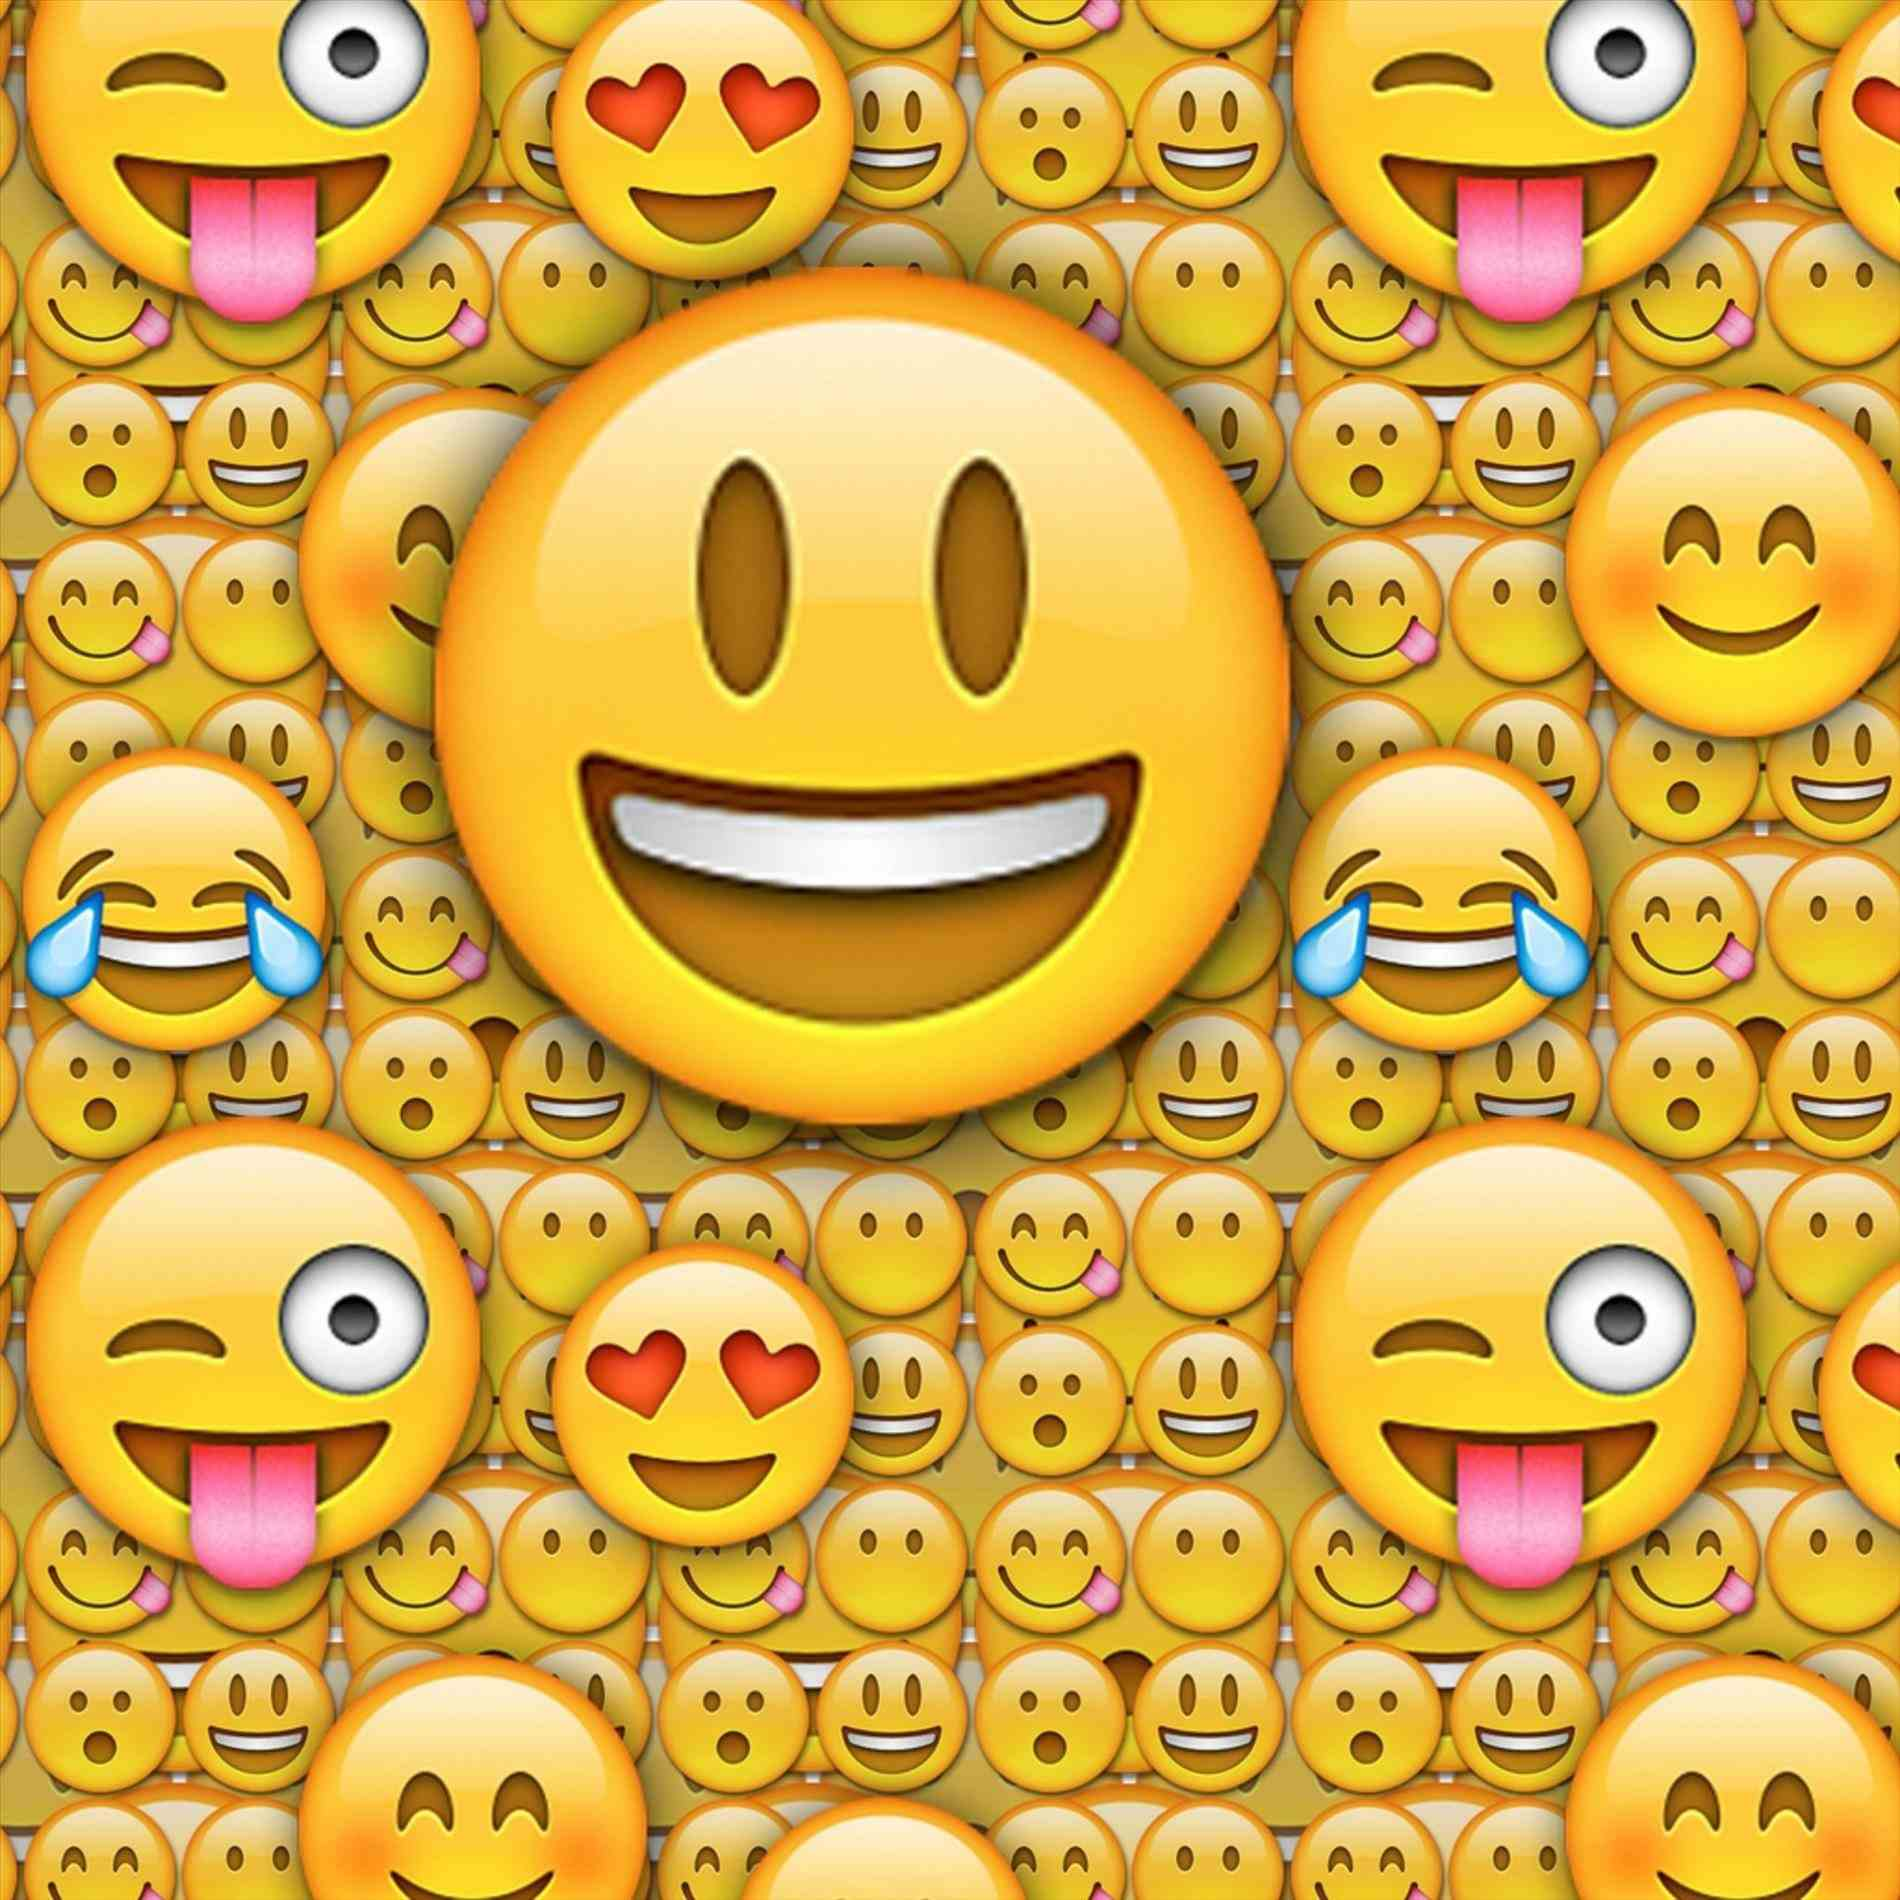 Emojis Galaxy Wallpapers On Wallpaperdog